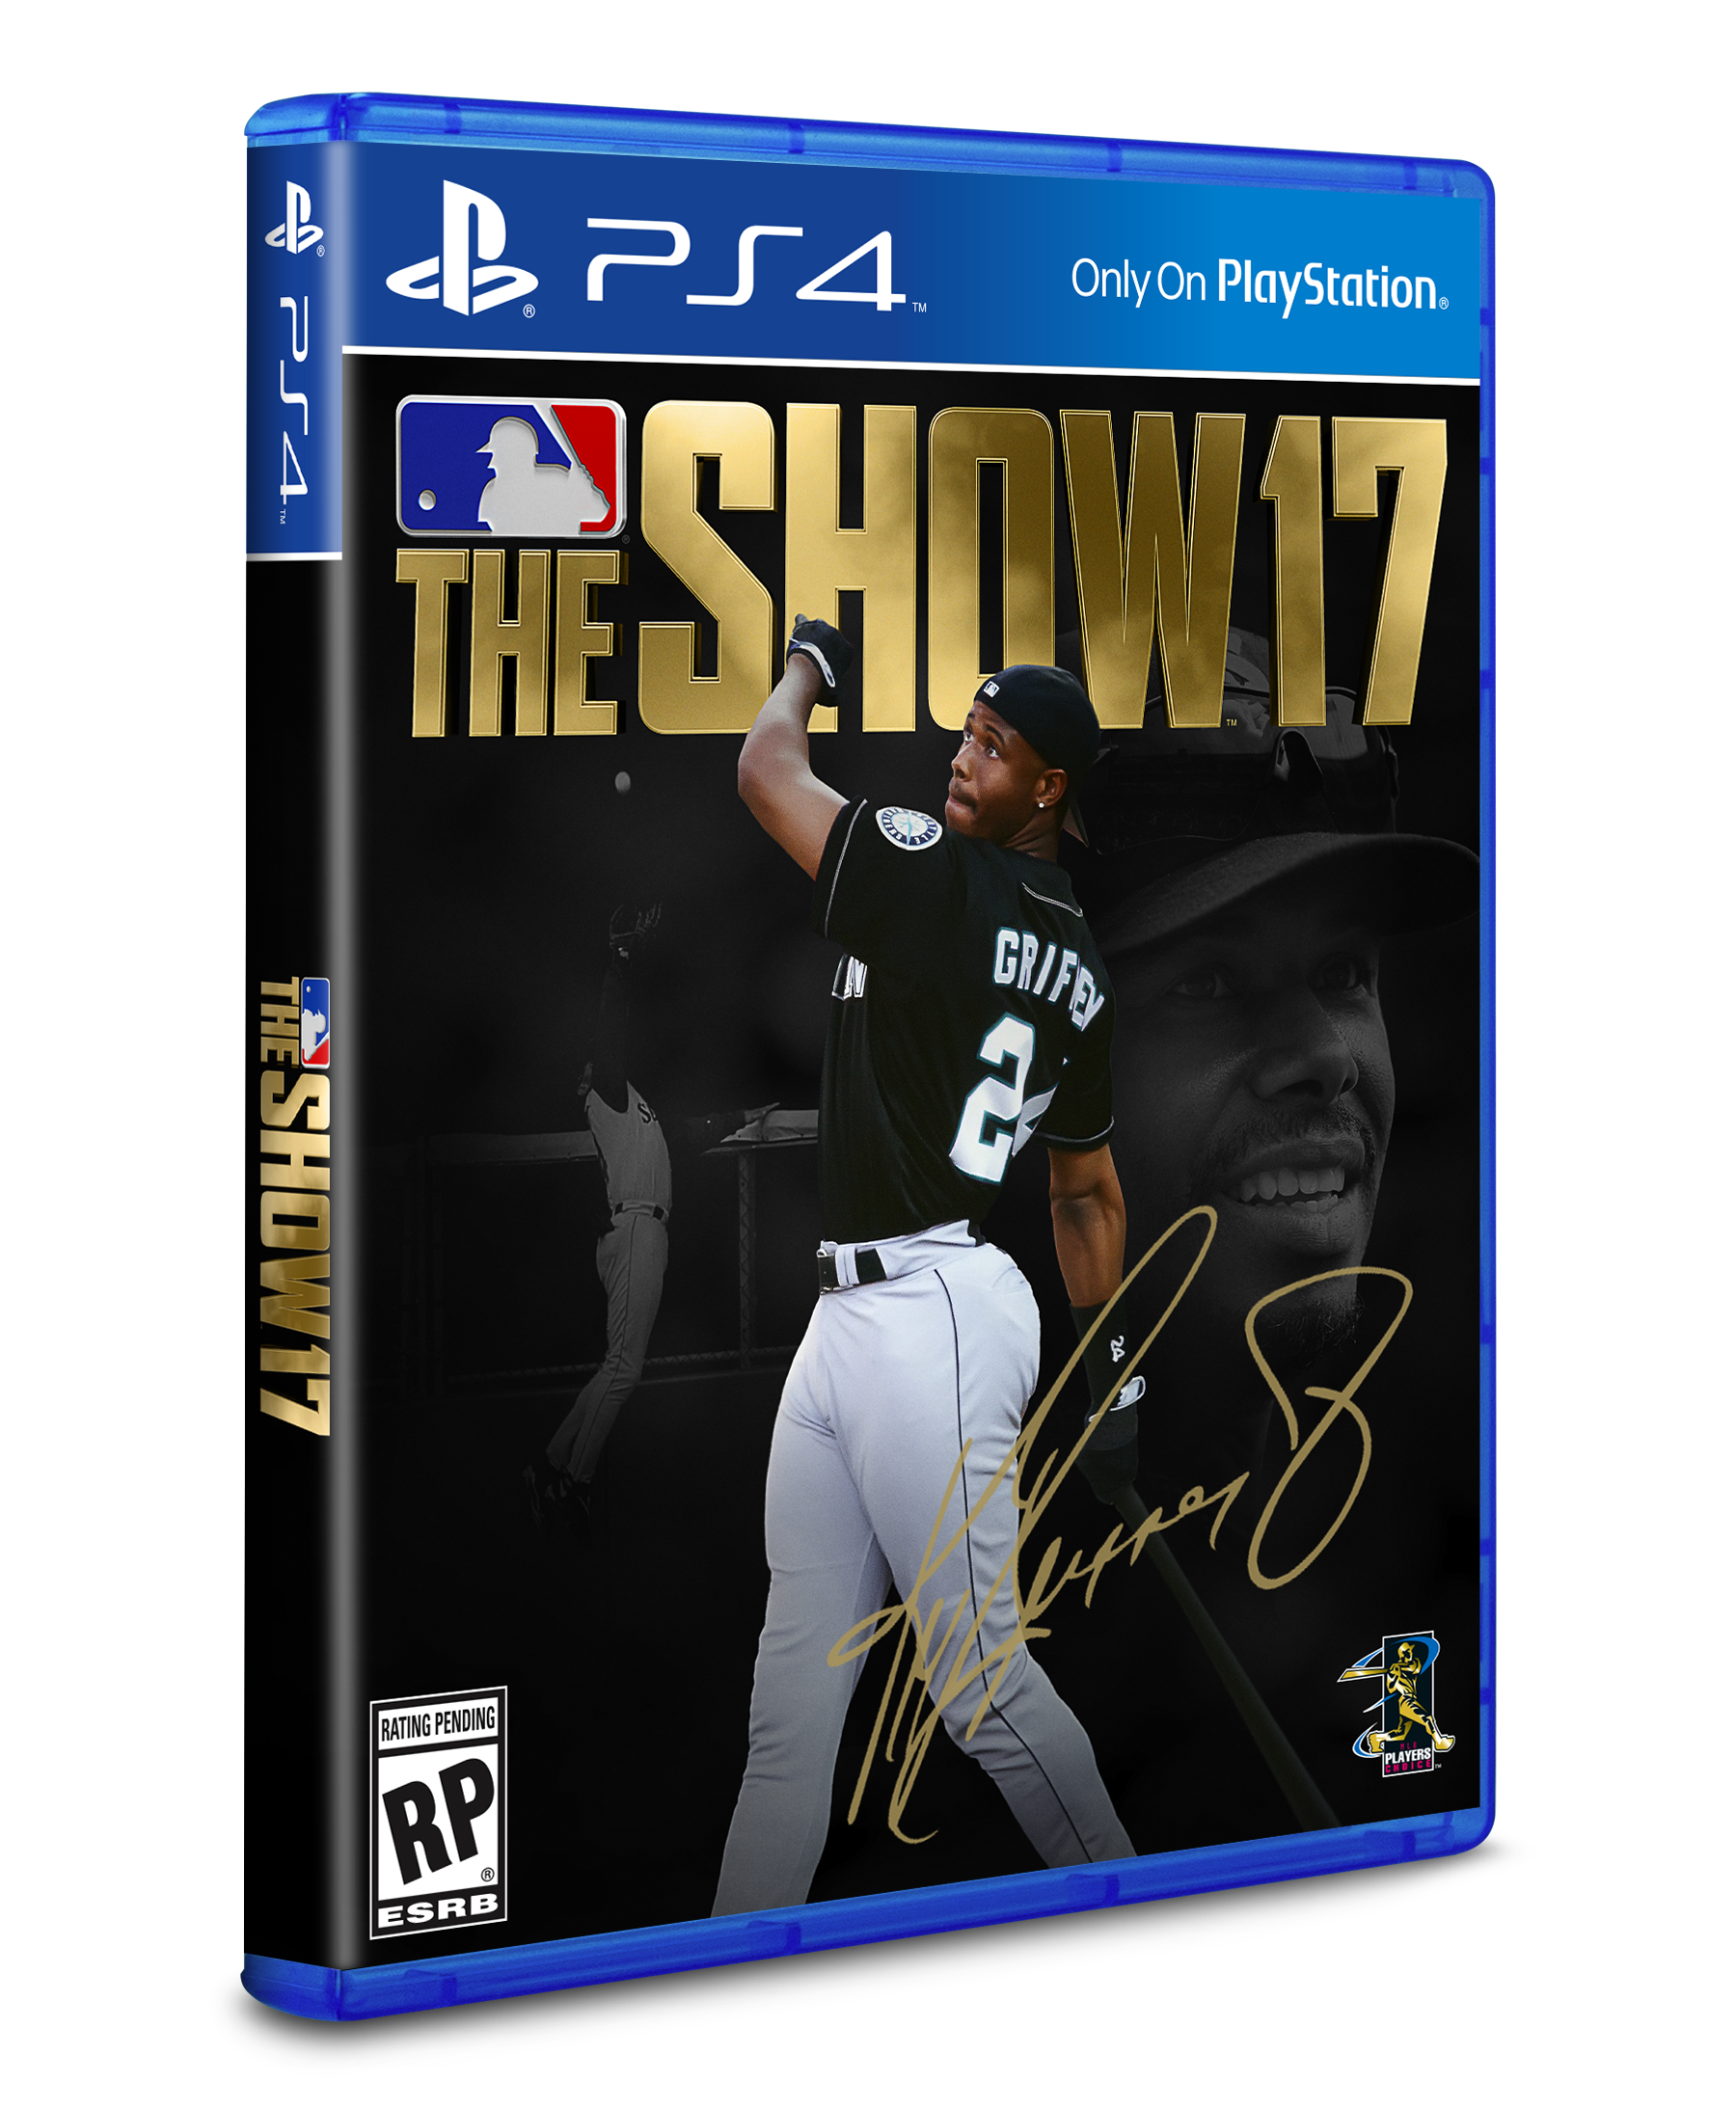 Mlb the show 17 will be released on march 28 2017 find the full